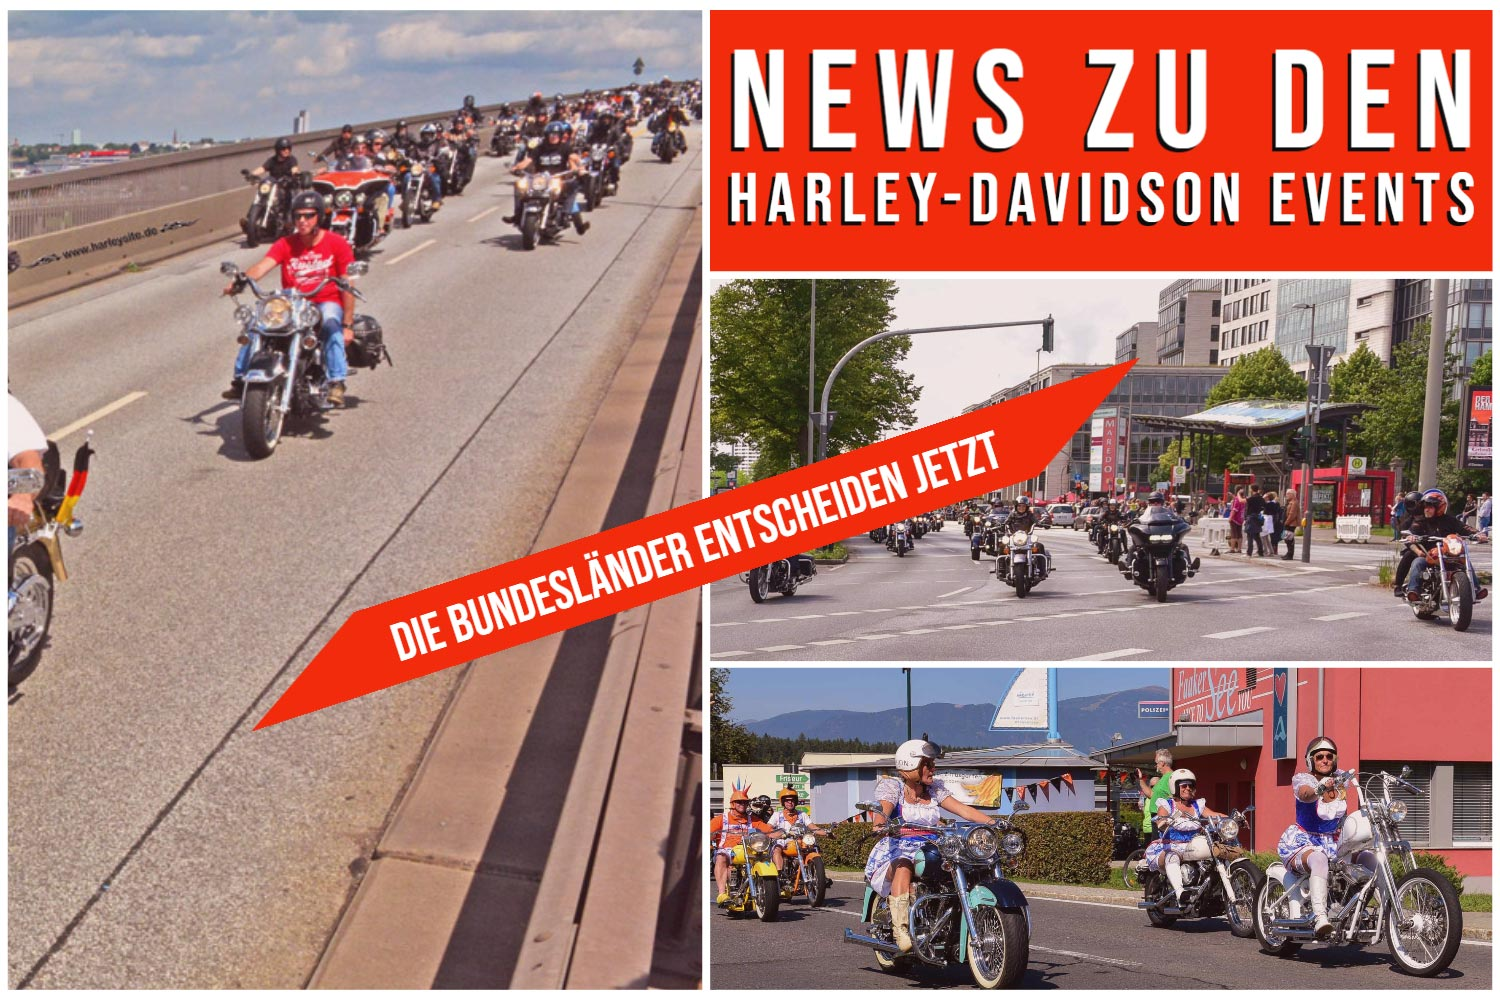 Harley-Davidson Events 2020